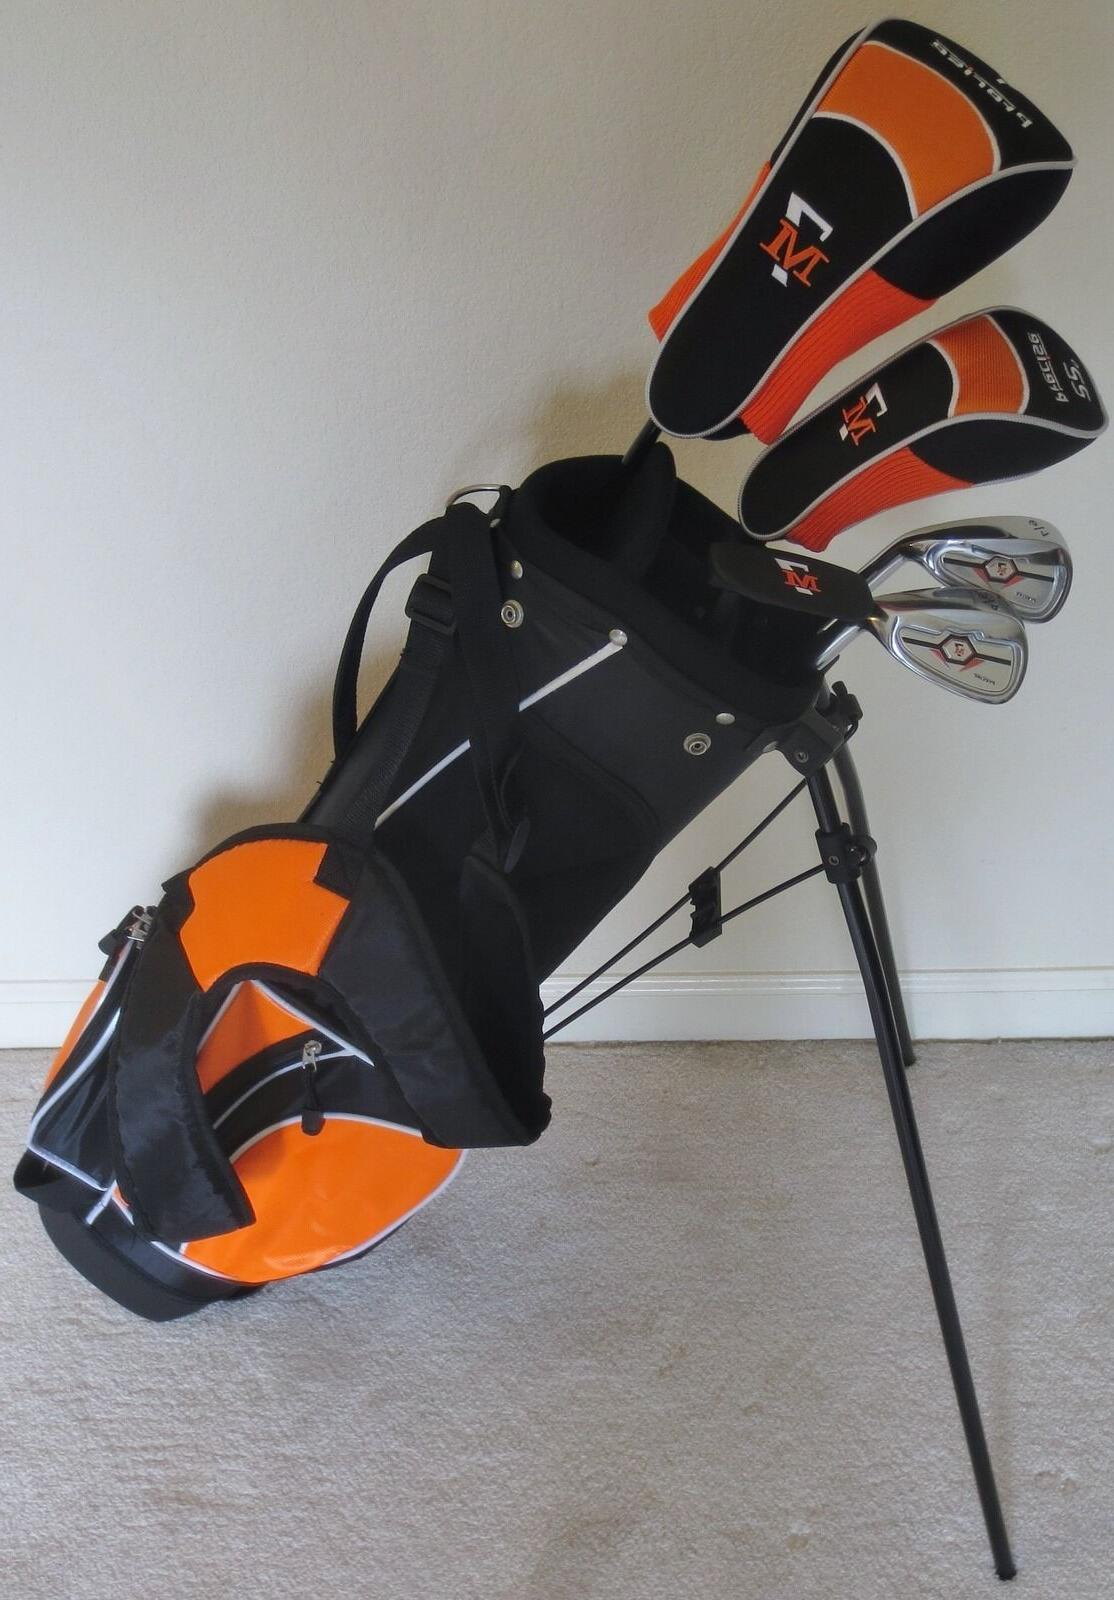 NEW RH Junior Golf Club Set with Jr. Stand Bag for Kids Ages